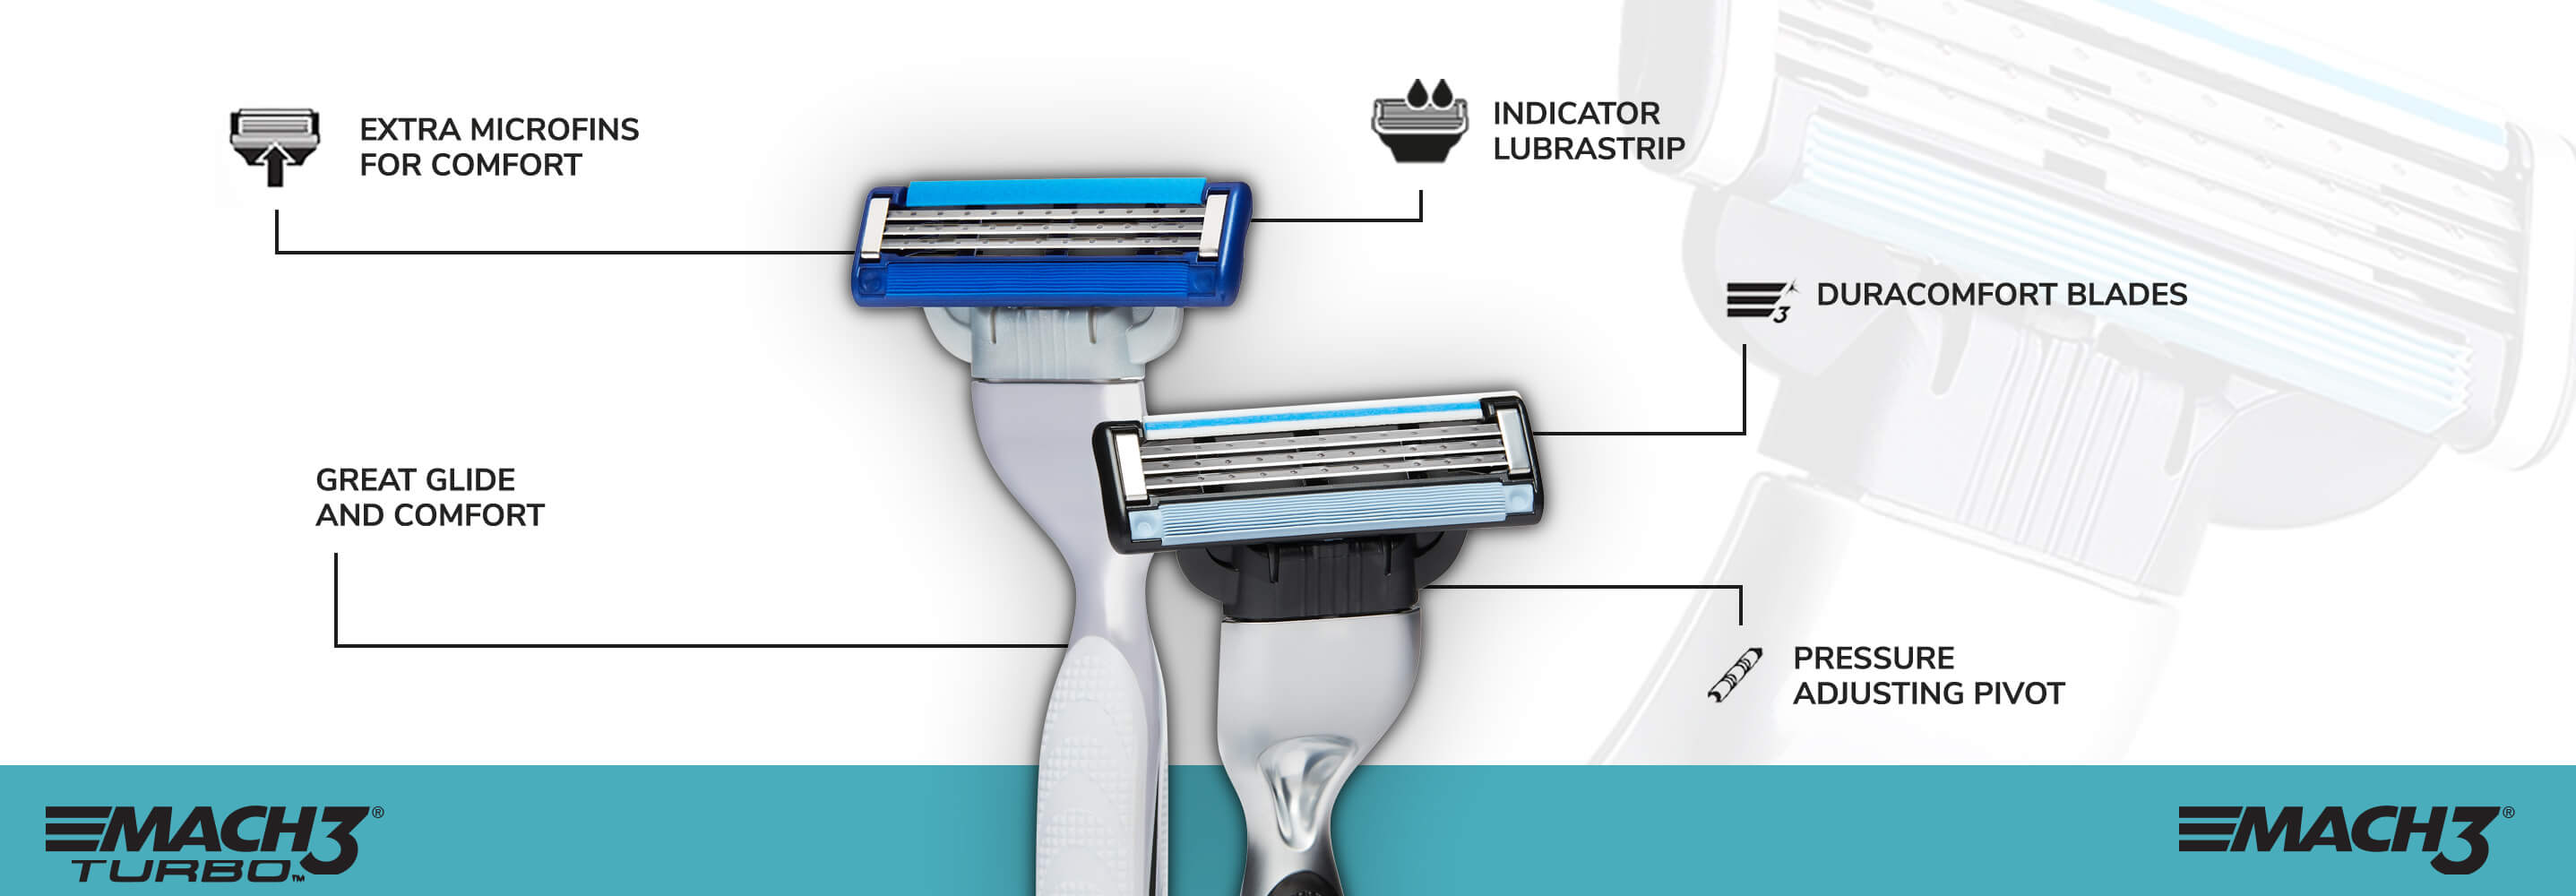 Illustration of Gillette Mach3 razor